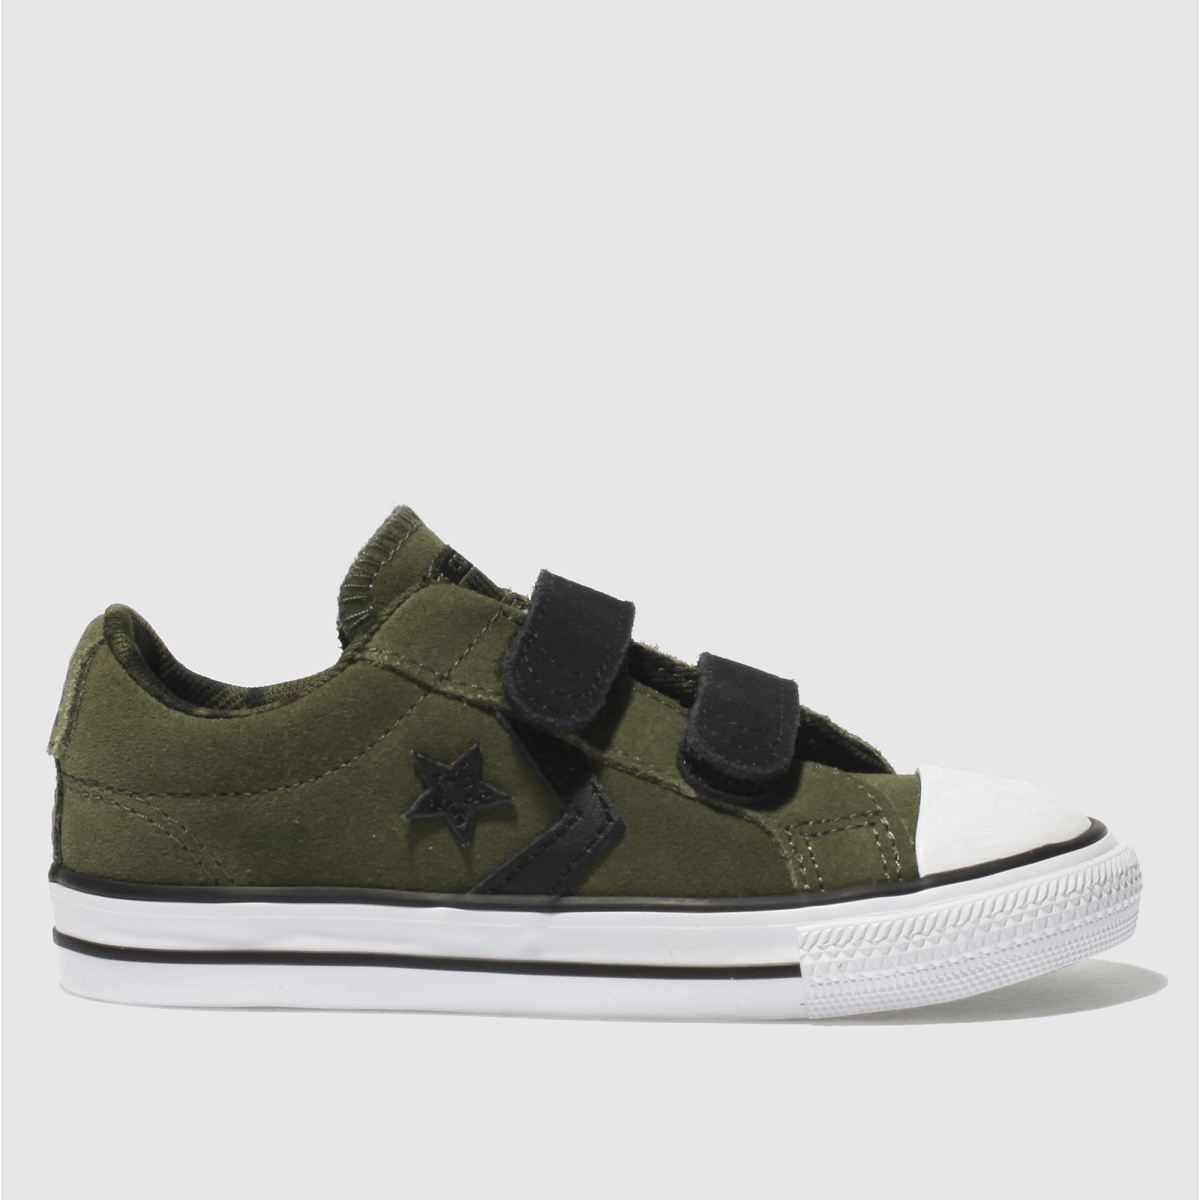 Converse Khaki Star Player 2v Ox Boys Toddler Trainers